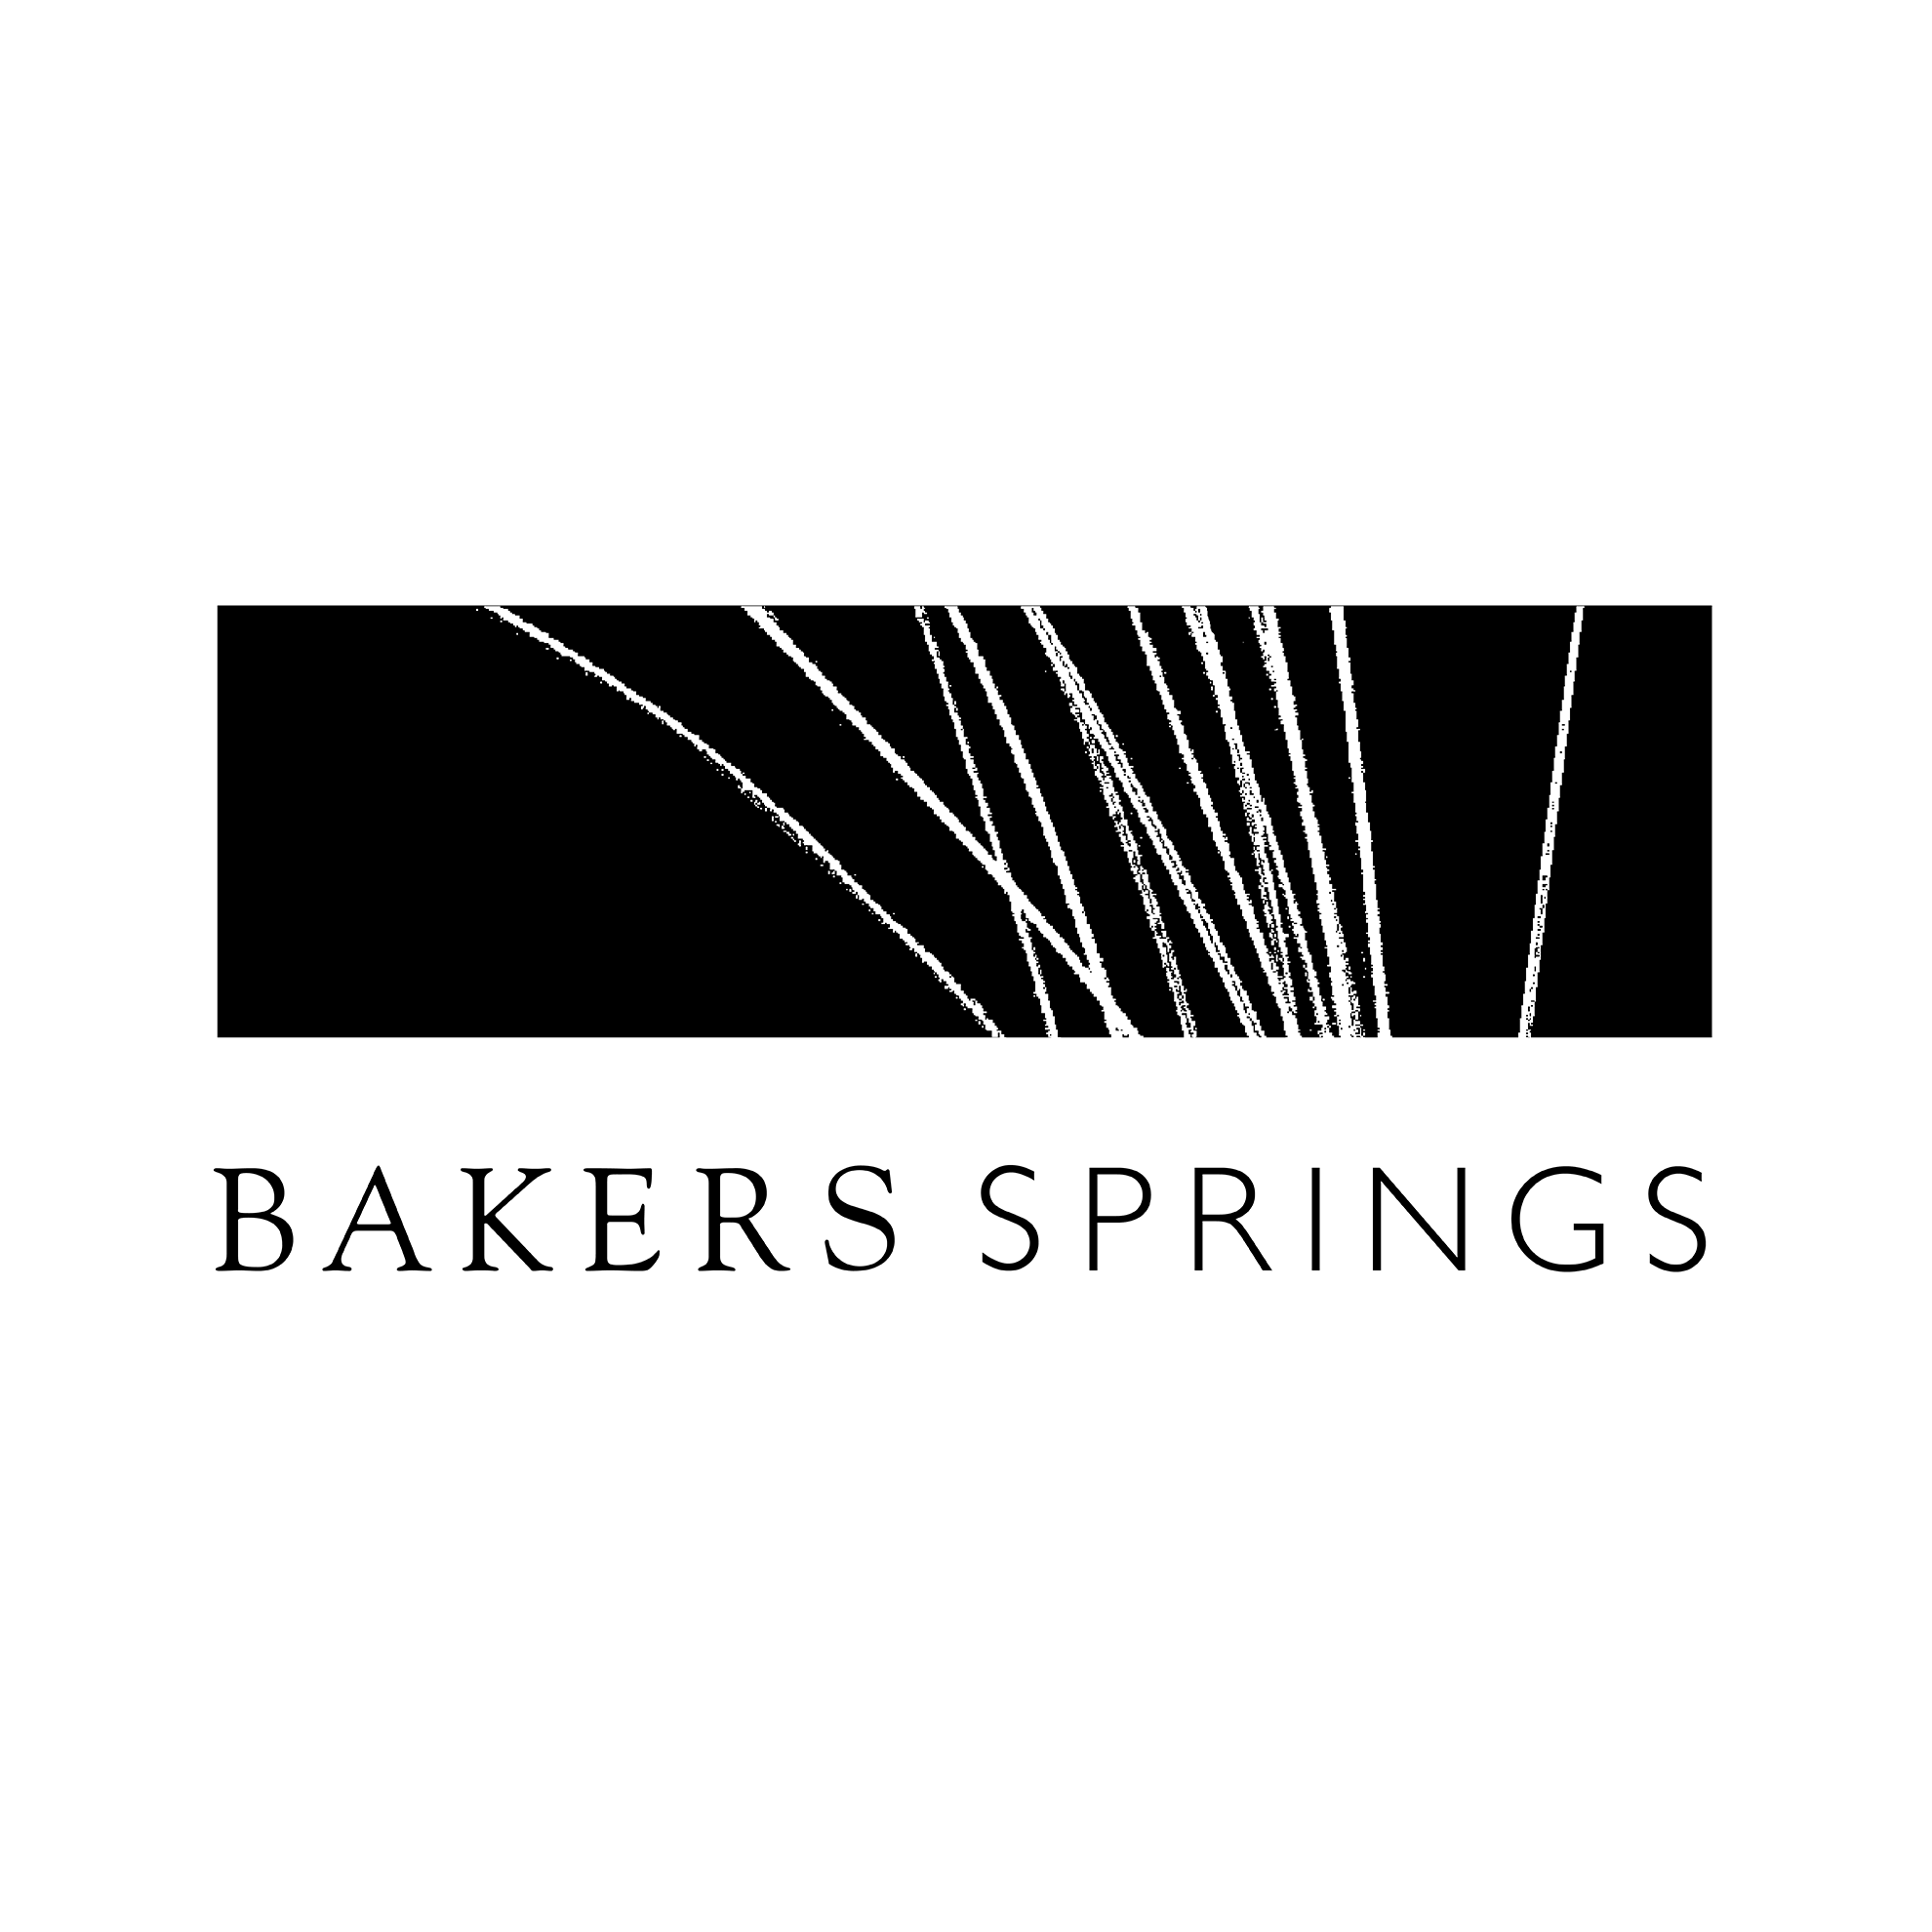 Bakers Springs logo